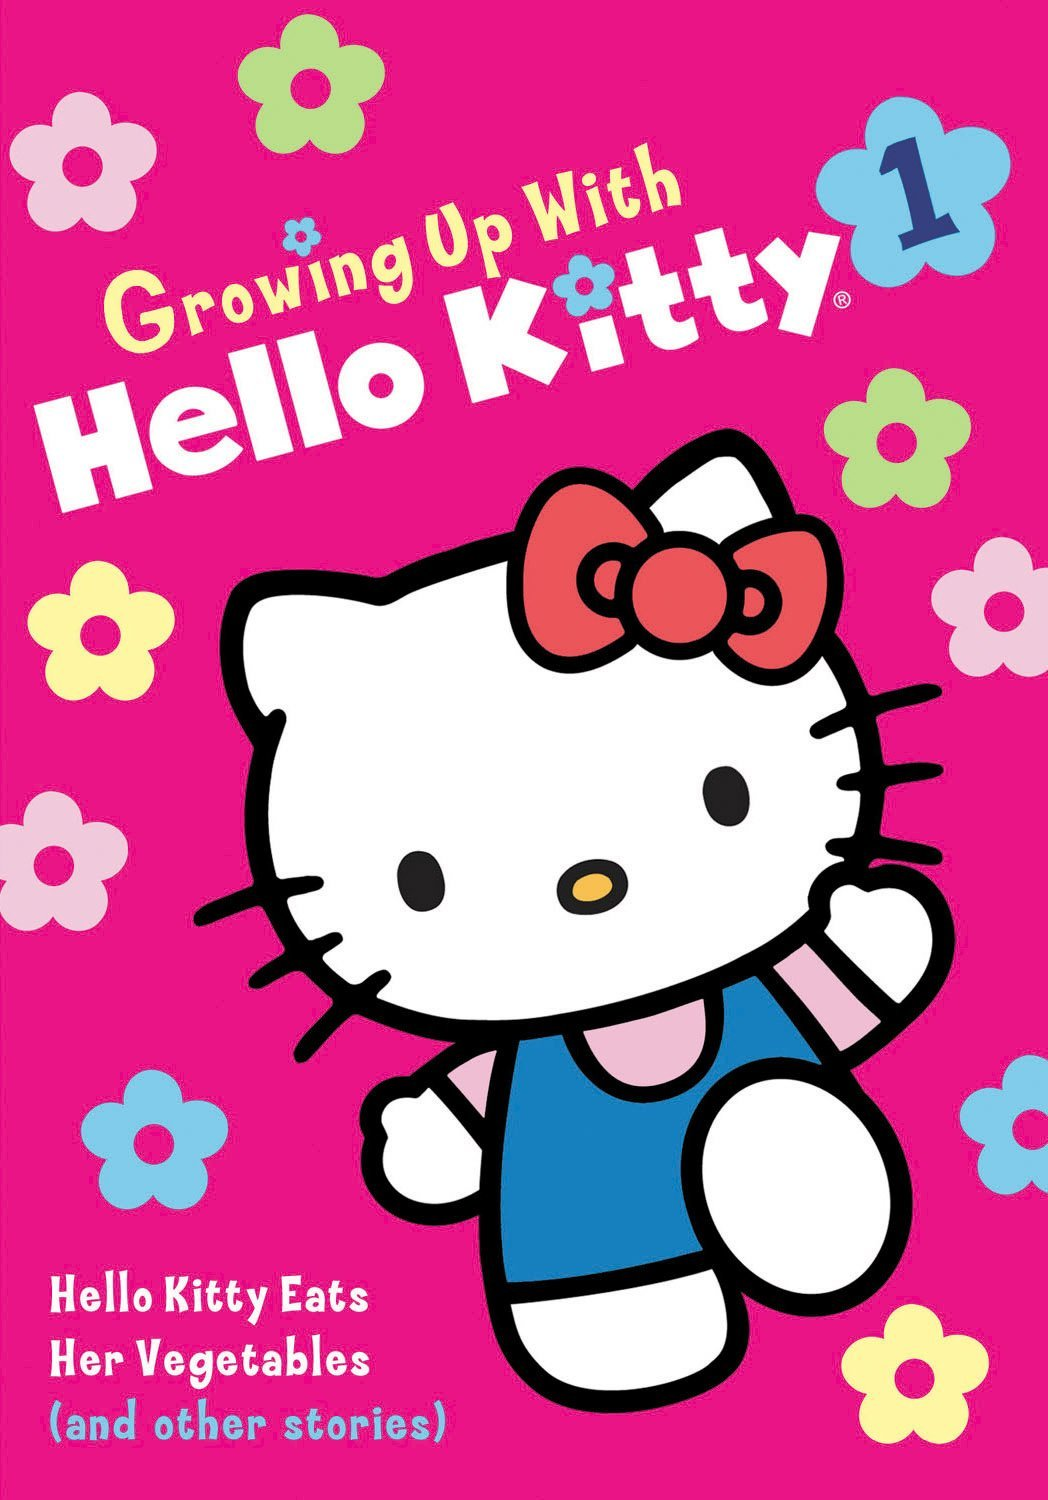 Hello Kitty Tarot Deck: Growing Up With Hello Kitty